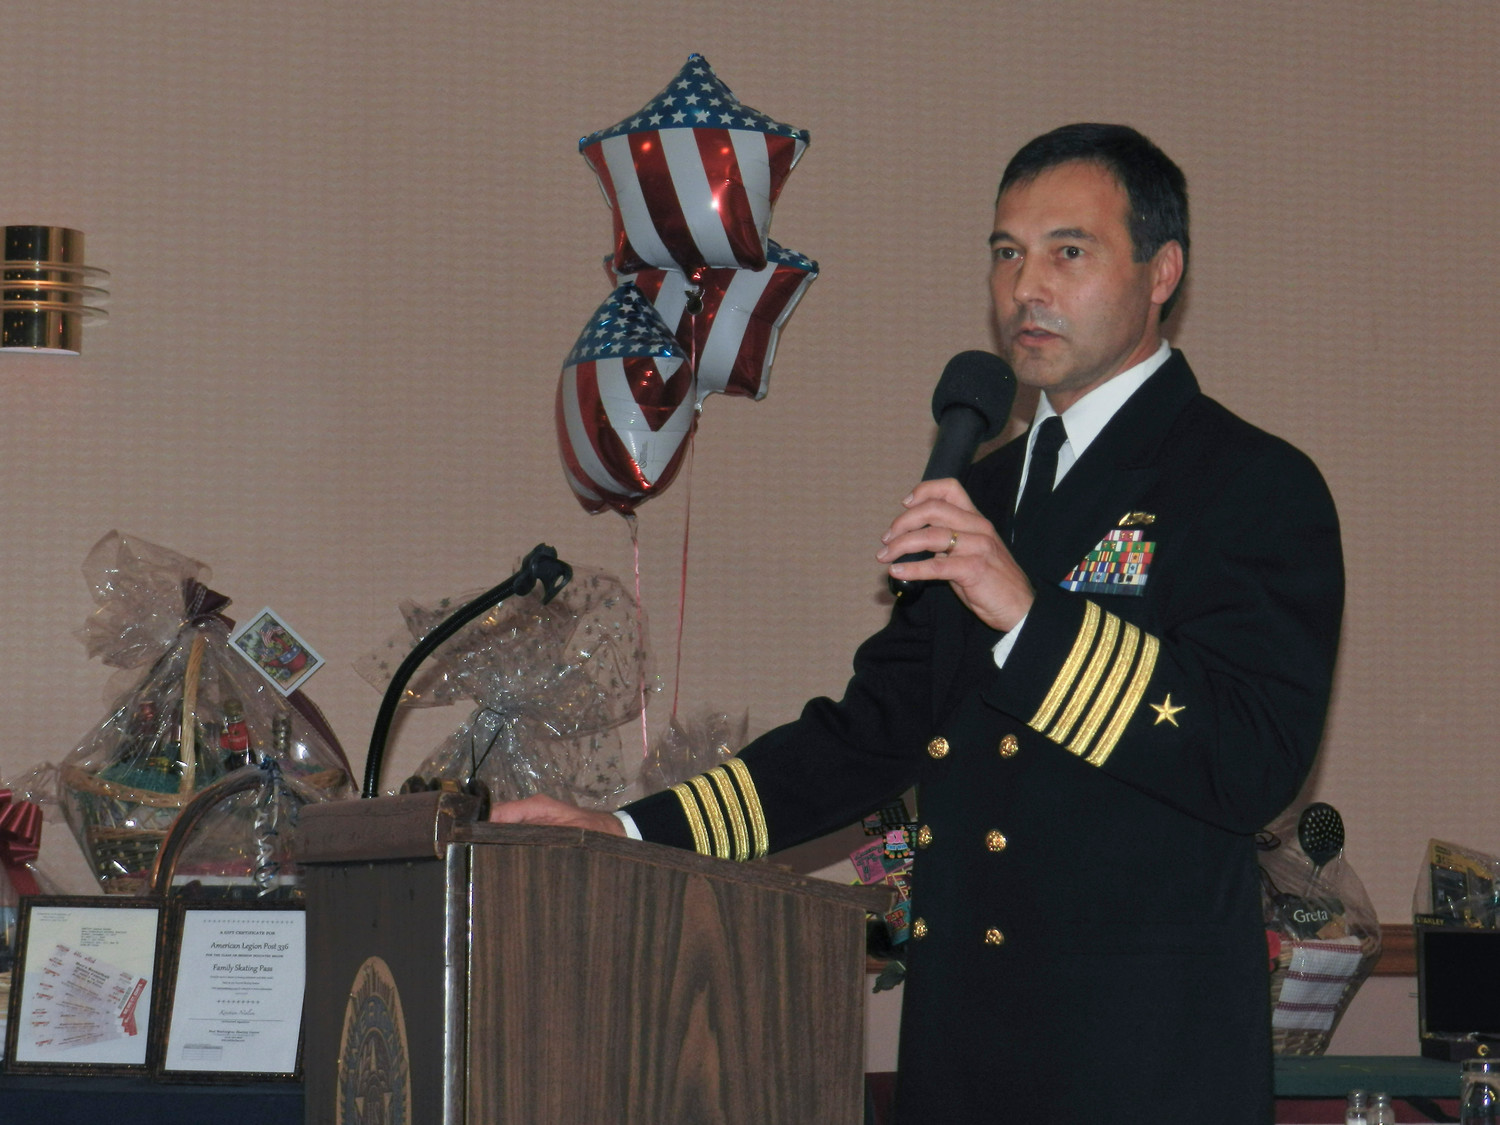 Retired Naval Captain Robert Bazan, a current member of American Legion Post 336, addressed attendants as the guest speaker.